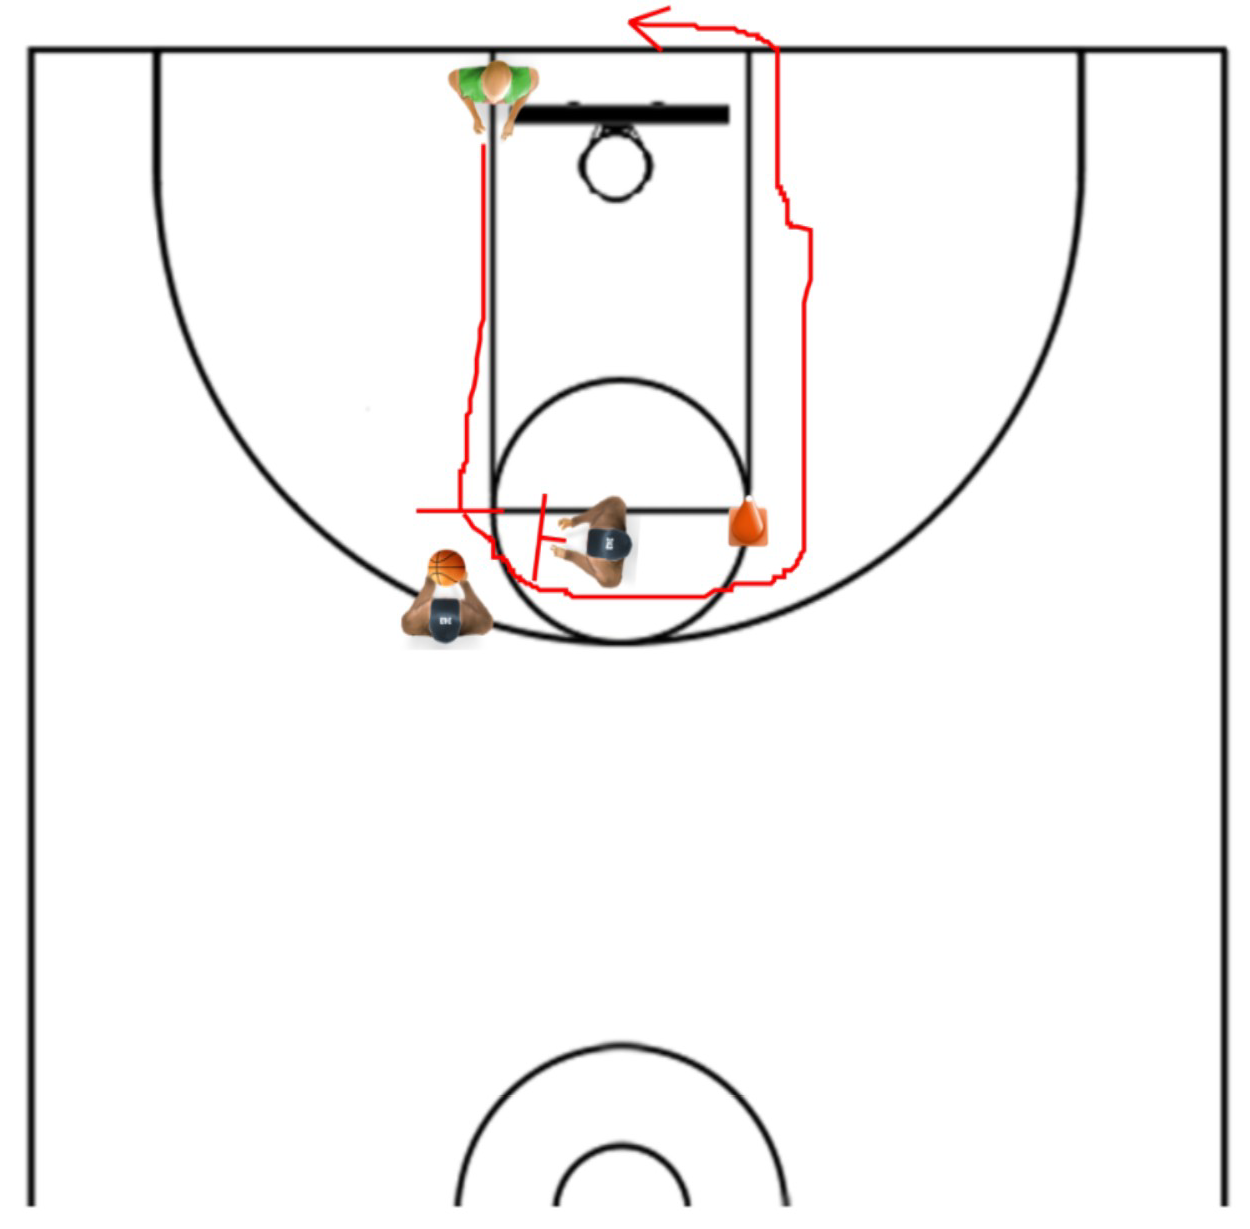 basketball drills Become a more complete player with ball handling, shooting, passing, rebounding and finishing drills from stack expert kyle ohman.